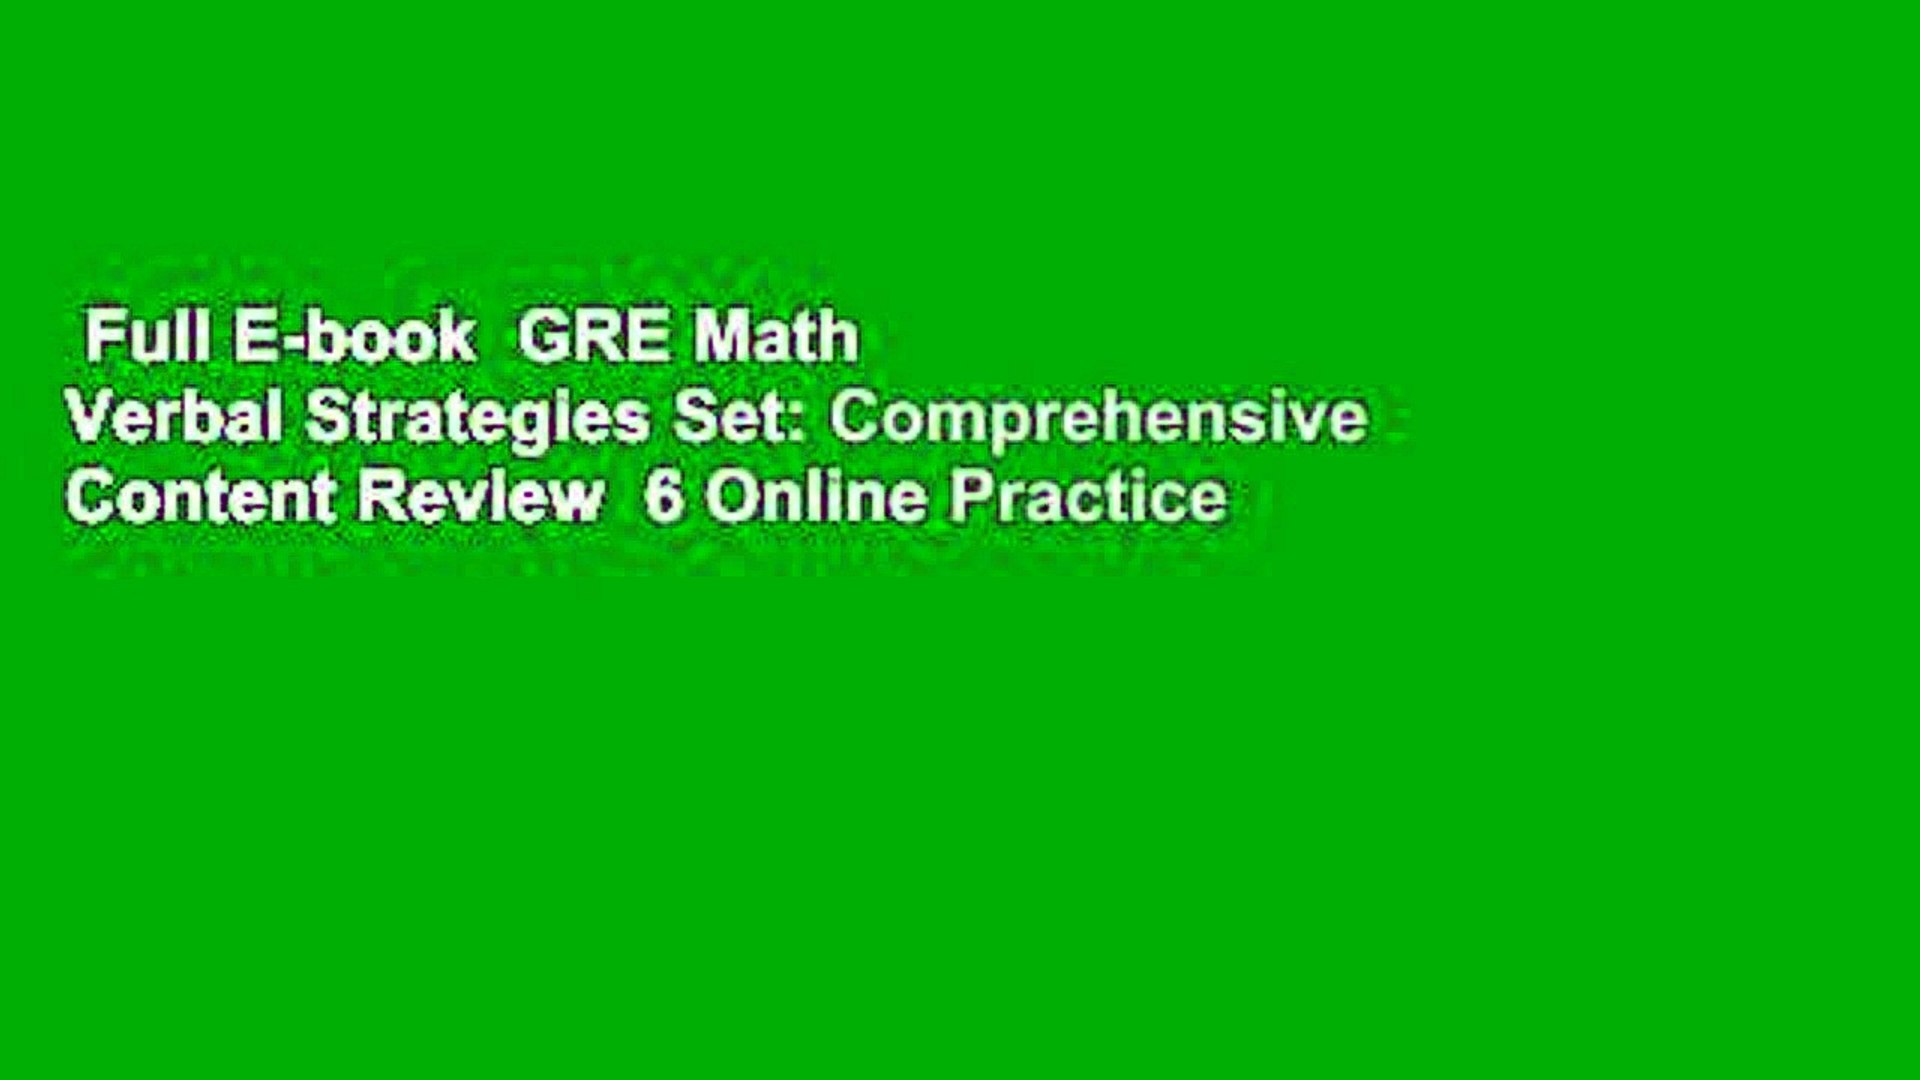 GRE Math /& Verbal Strategies Set Effective Strategies /& 6 Online Practice Tests from 99th Percentile Instructors